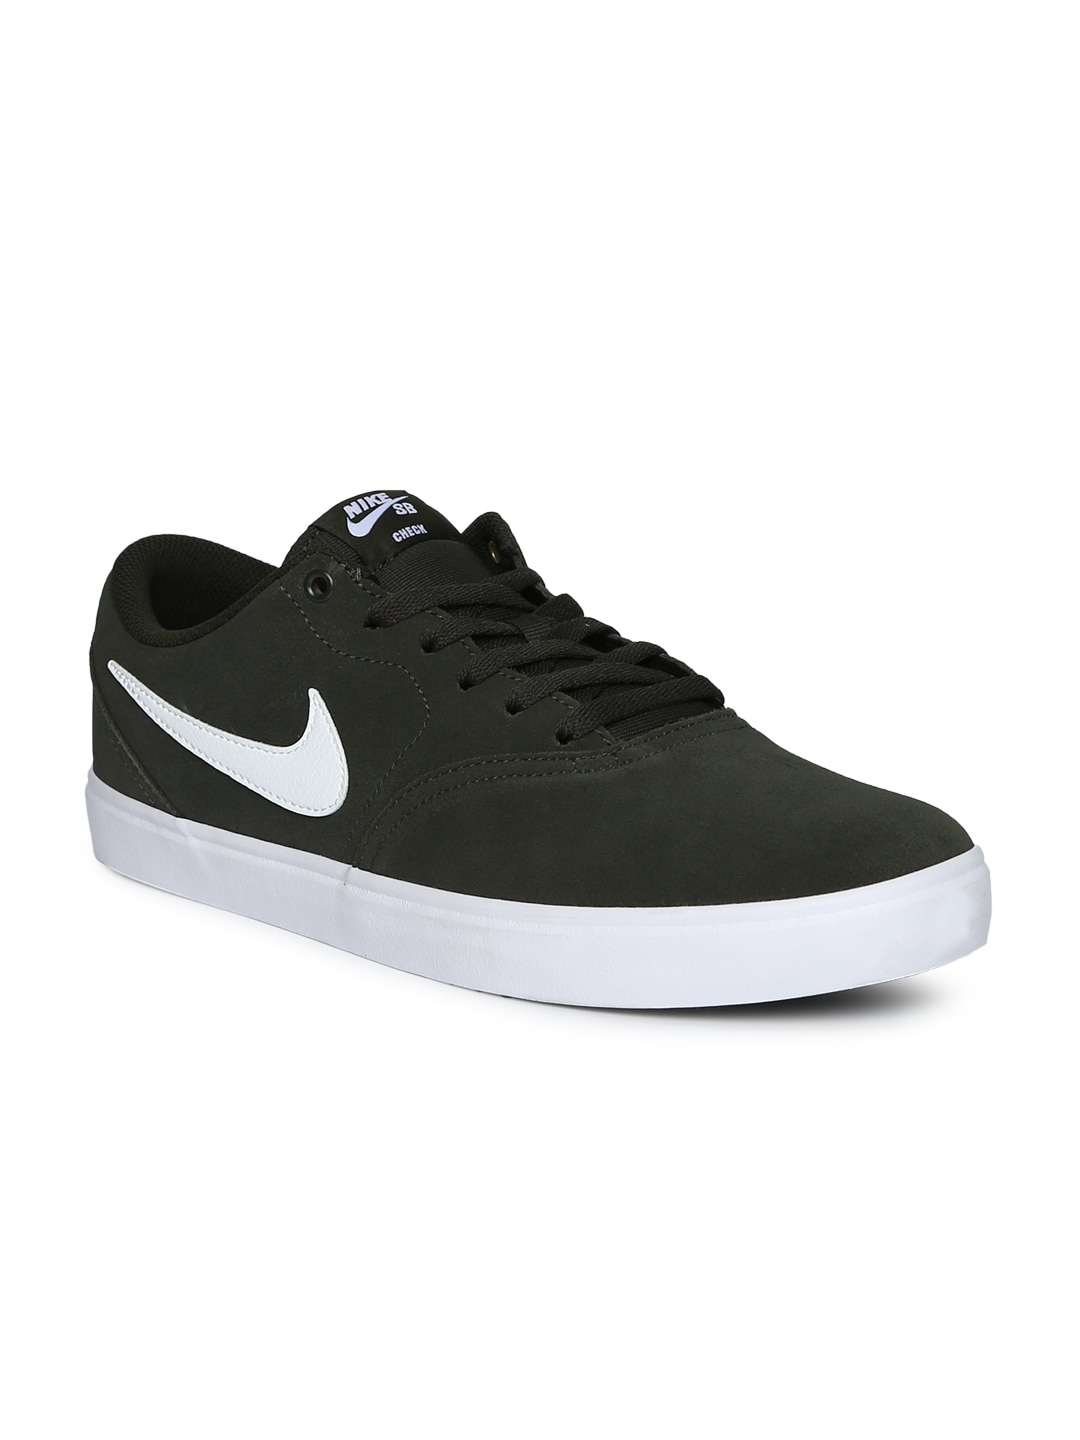 86231adc02 Nike Solar - Buy Nike Solar online in India